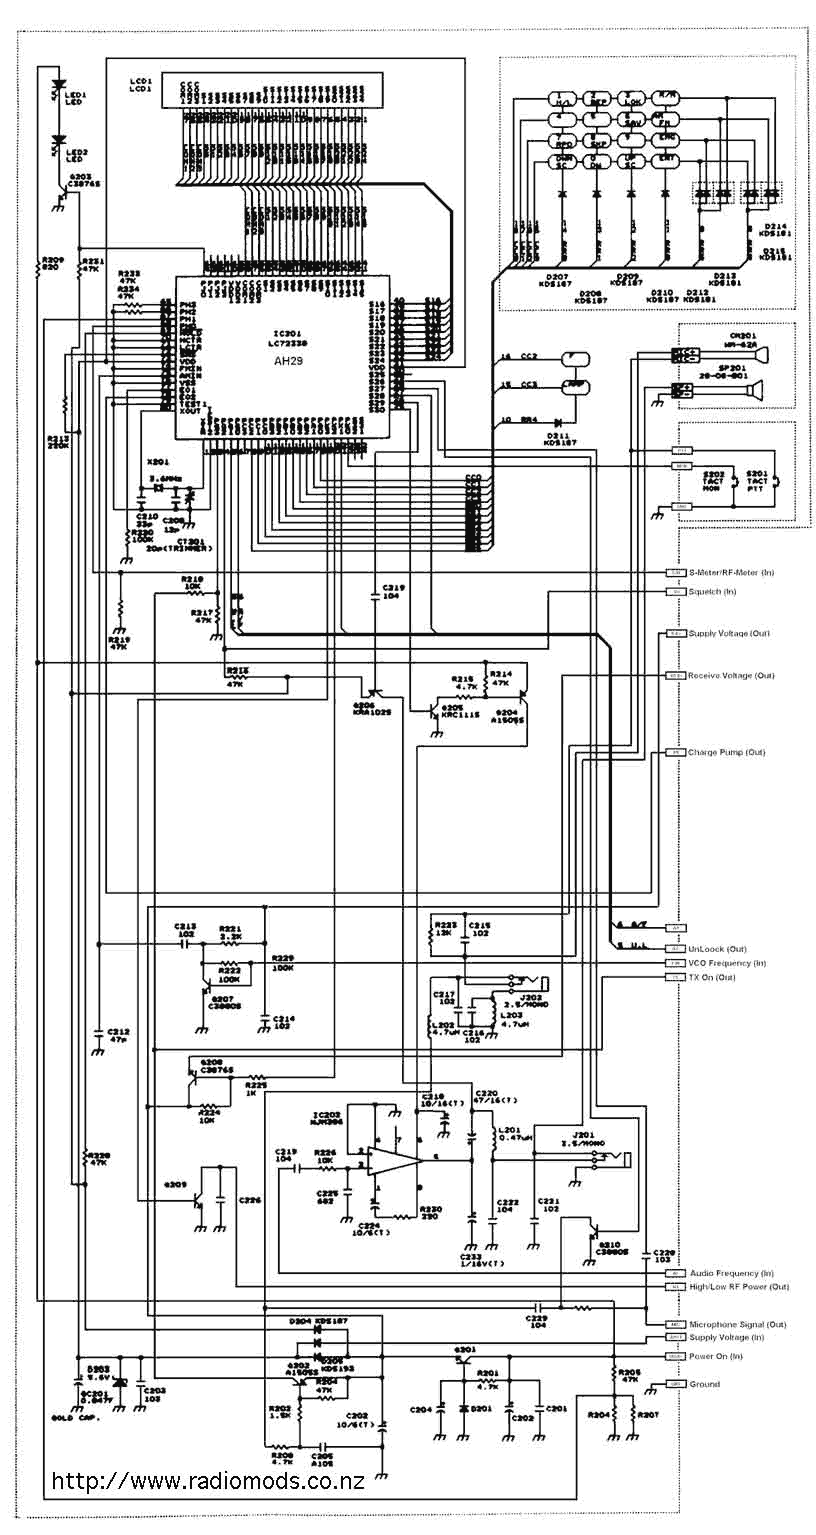 Viper 500 Wiring Diagram besides Viper 5301 Wiring Diagram moreover Eton 90 Parts Diagram additionally  on eton rxl 90r viper wire diagram